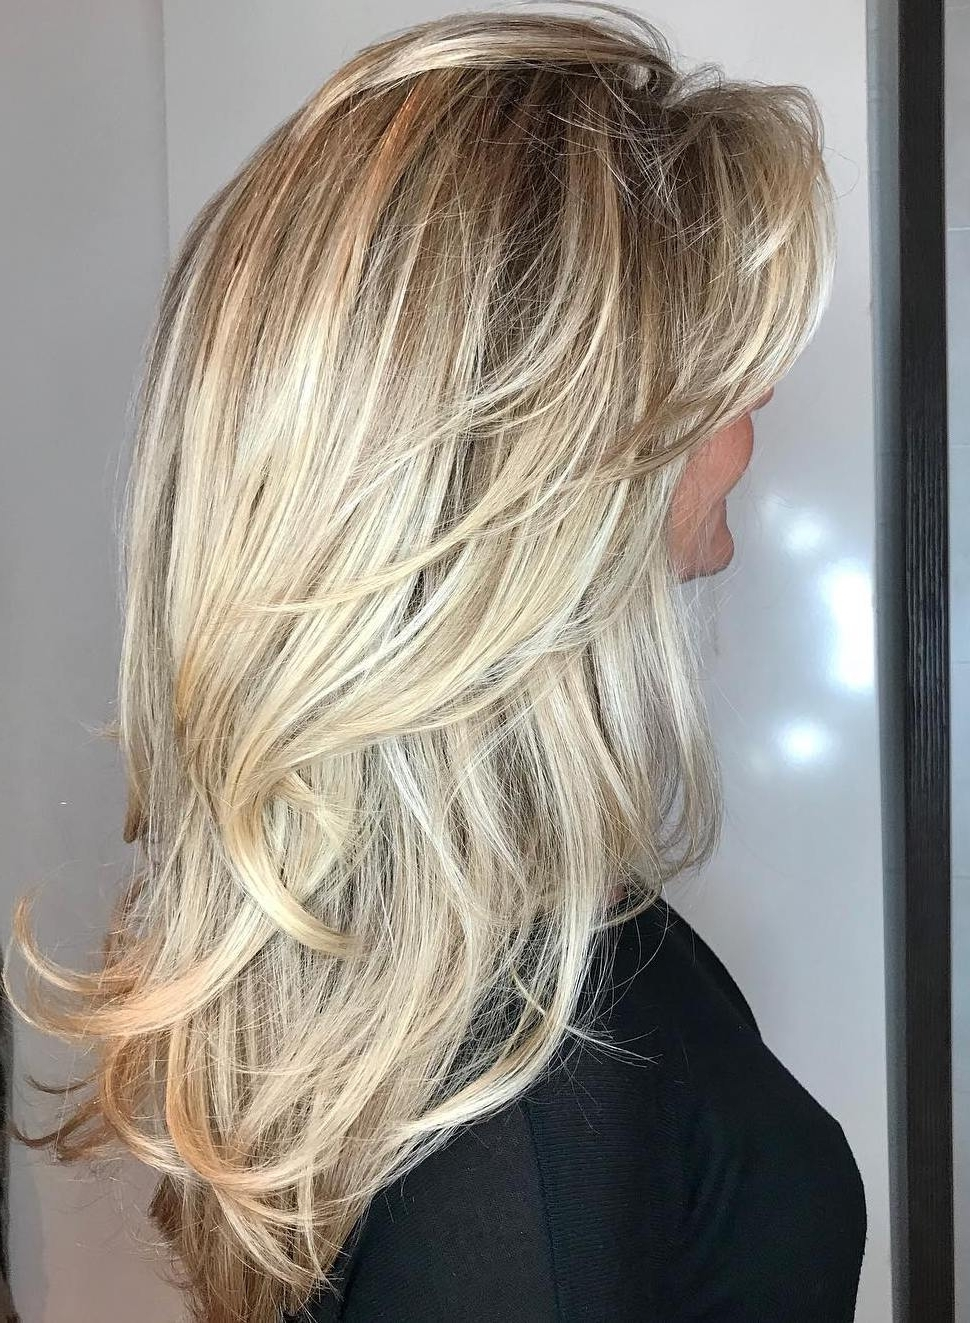 50 Cute Long Layered Haircuts With Bangs 2018 Pertaining To 2018 Layered Bright And Beautiful Locks Blonde Hairstyles (View 8 of 20)